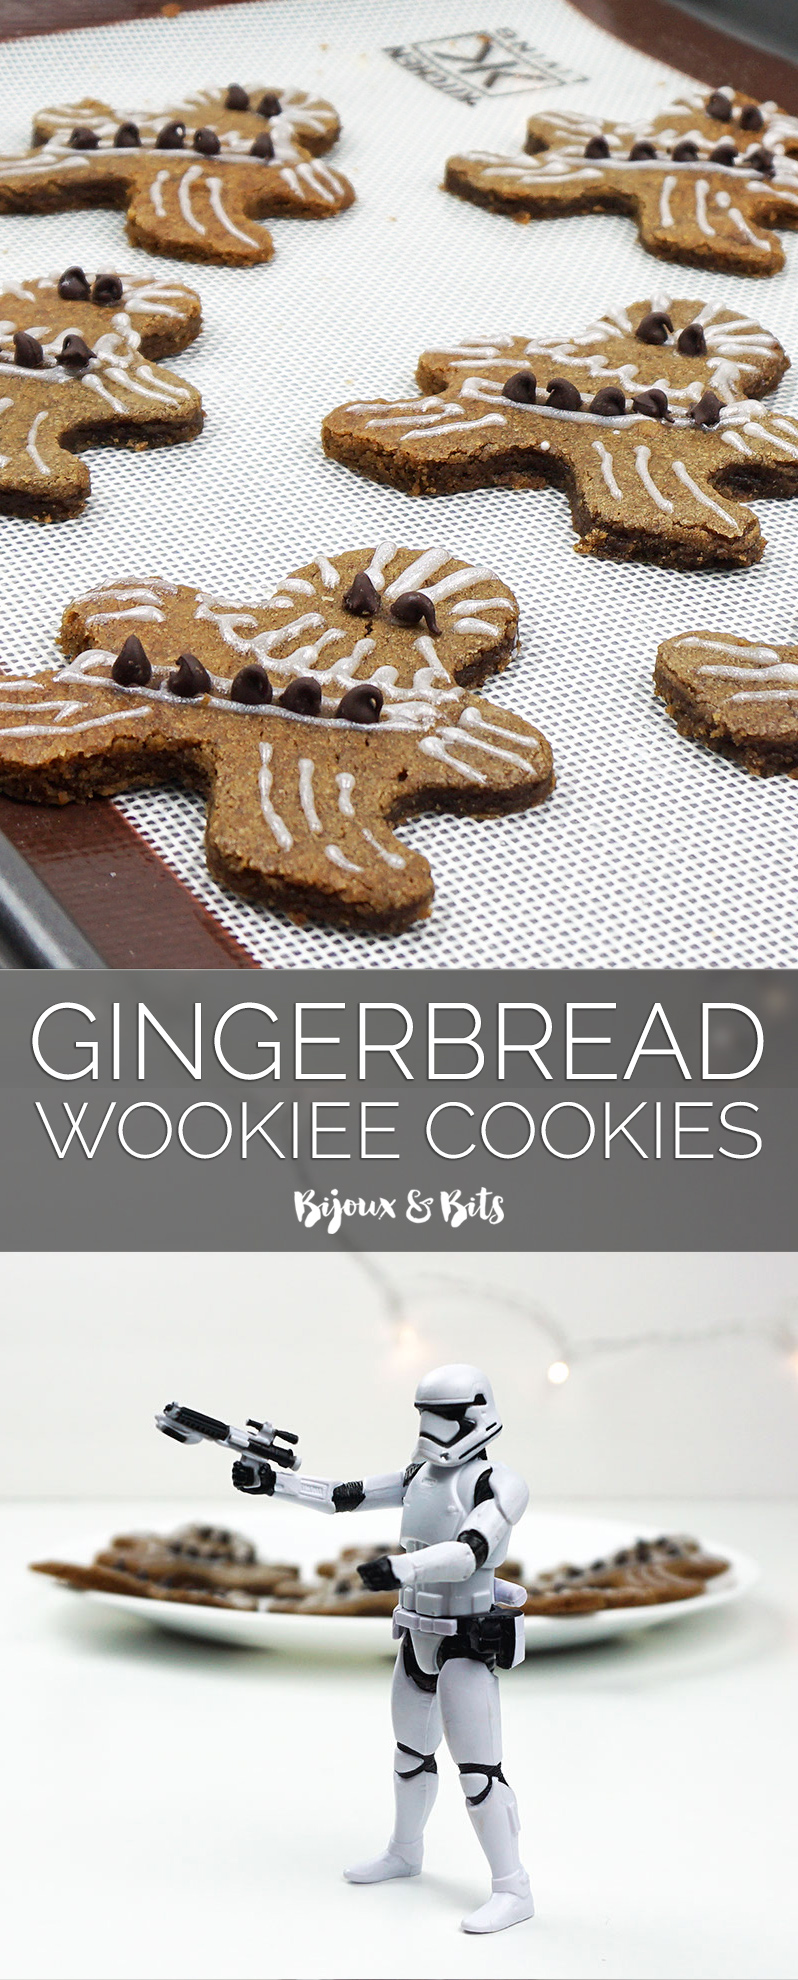 Gingerbread wookiee cookies from @bijouxandbits